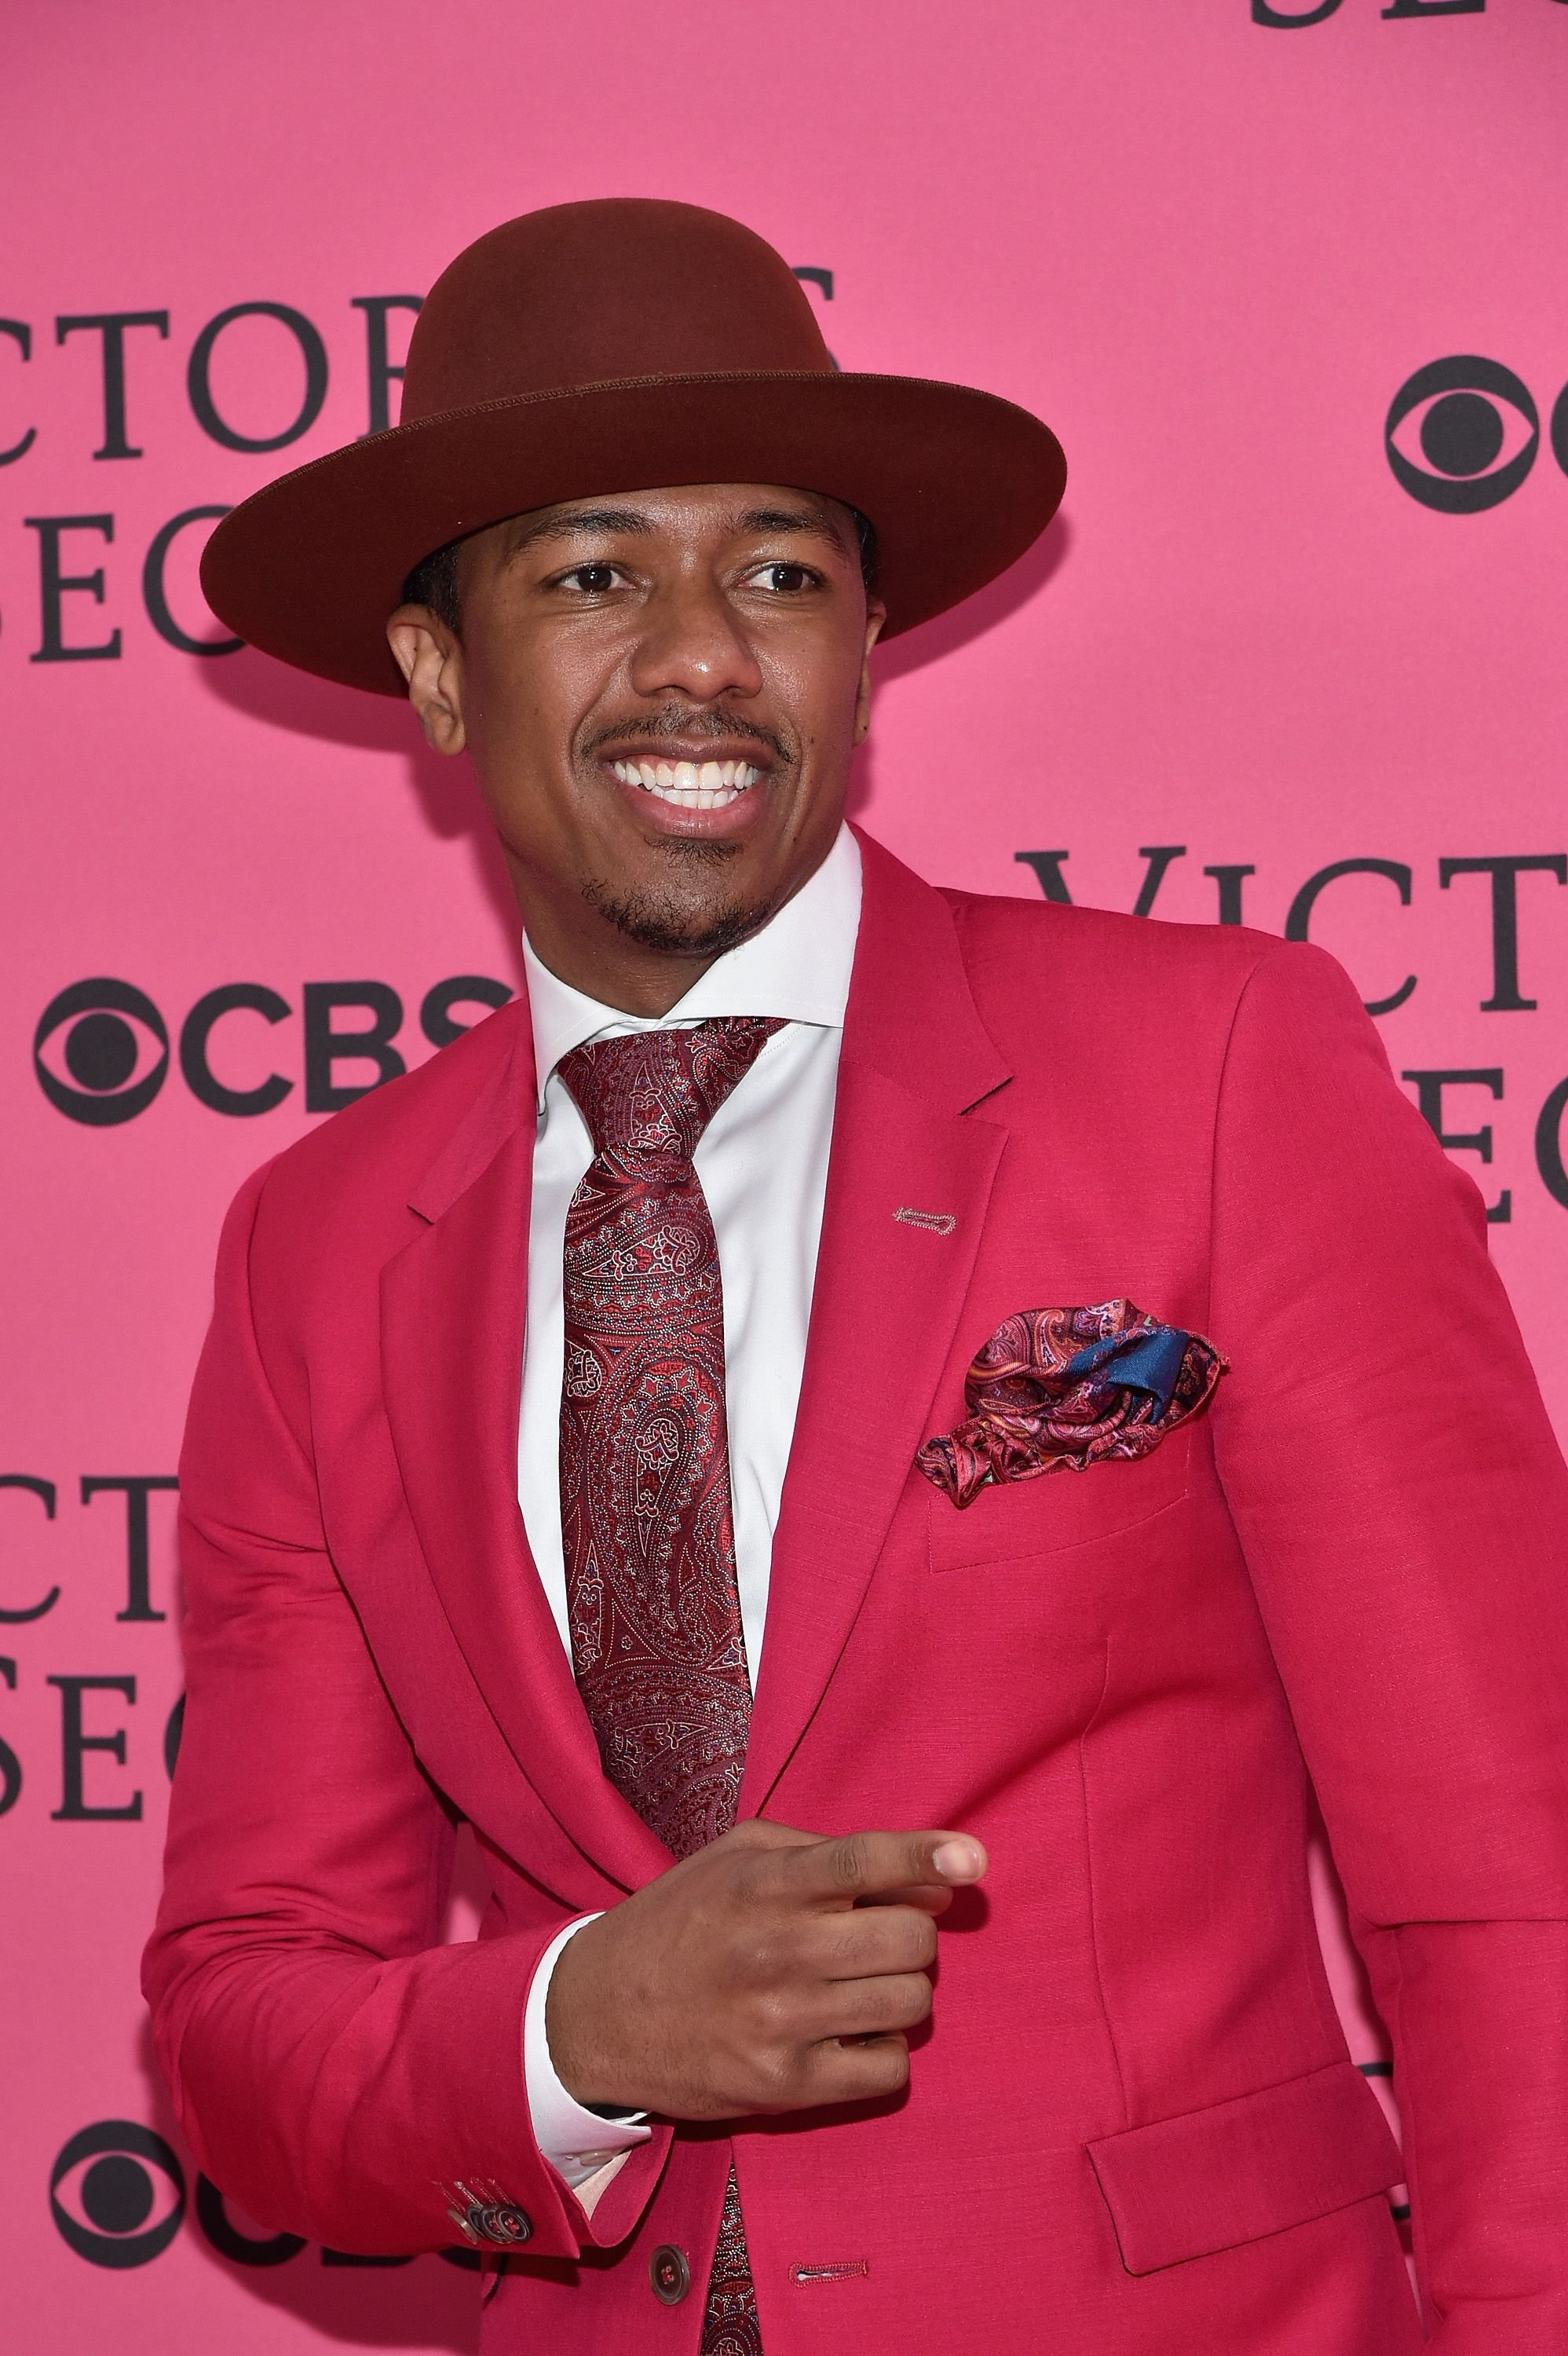 Nick Cannon at a fashion show on November 10, 2015 in New York.   Photo: Getty Images